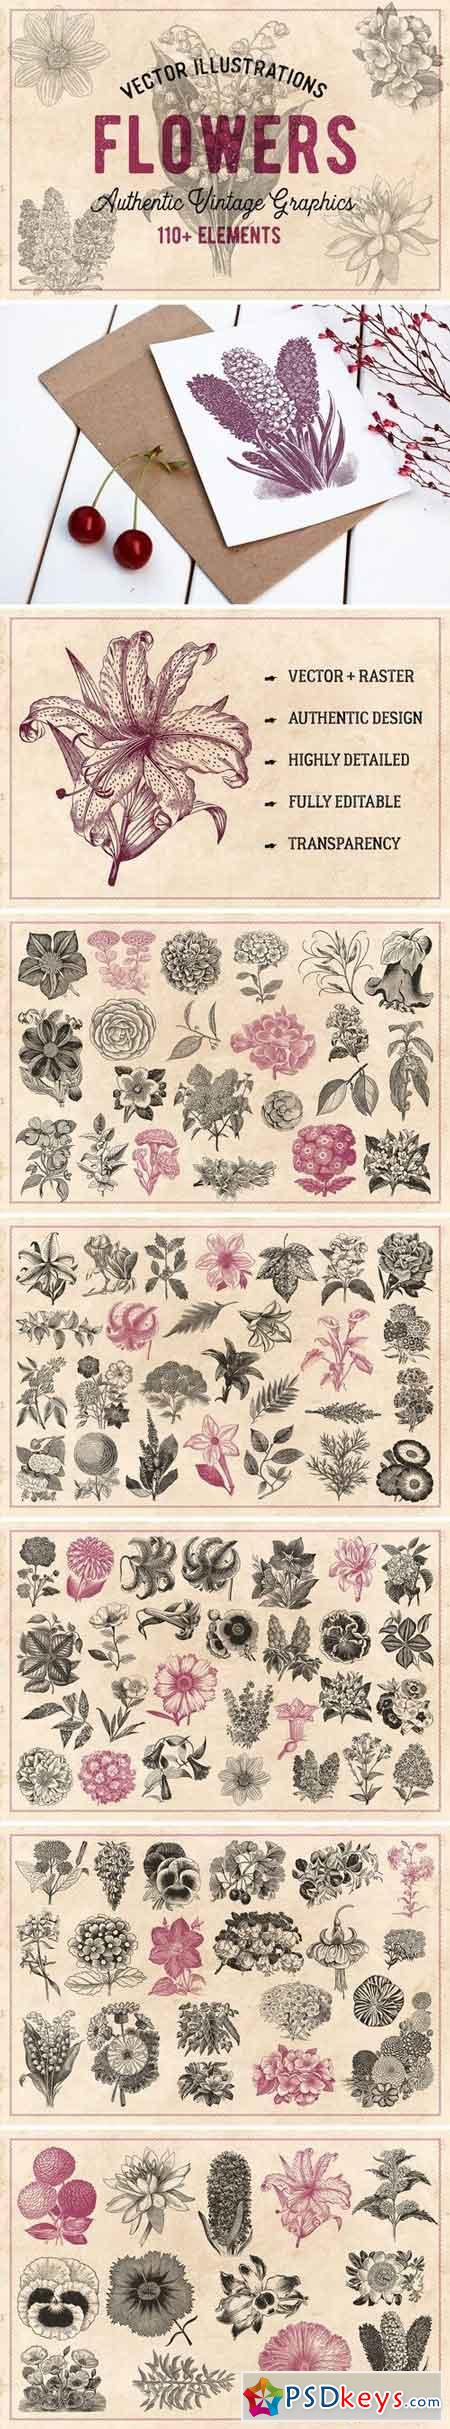 110 Vintage Flowers & Plants Vector 1441016